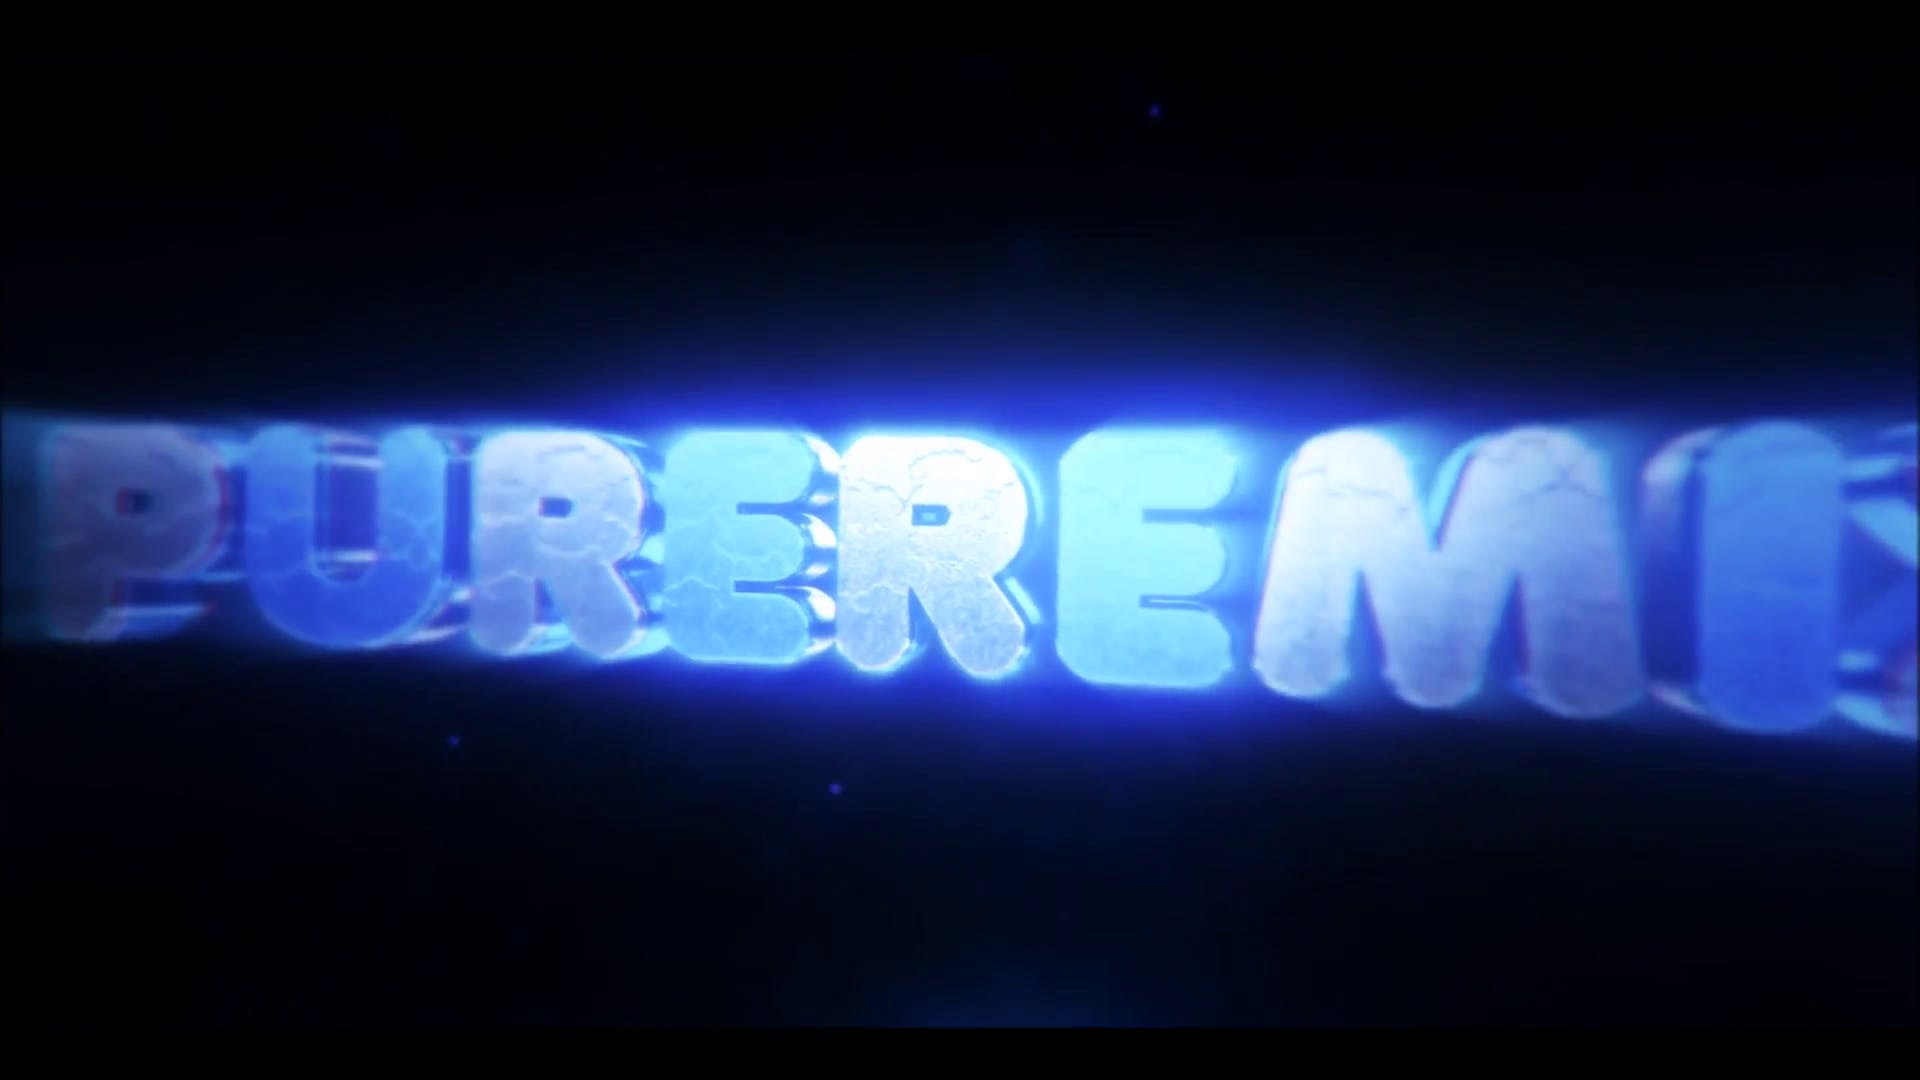 EPIC Blue Cinema 4D After Effects Intro Template FREE DOWNLOAD